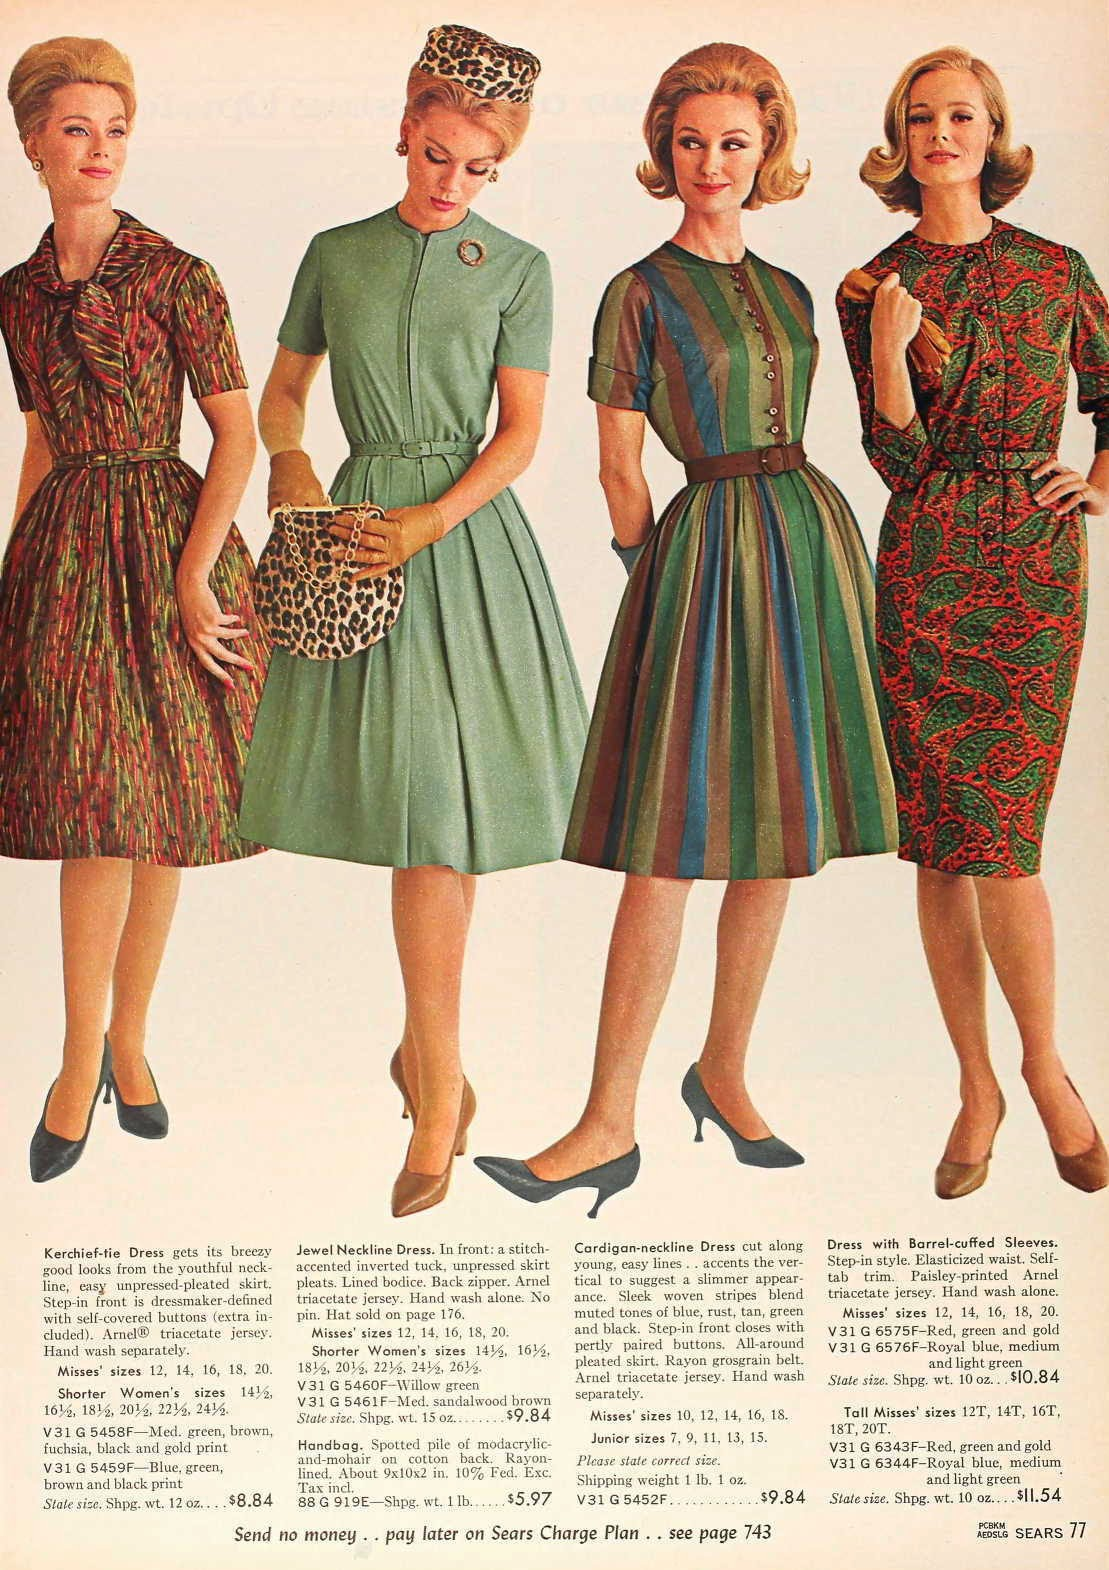 Snapped Garters: Fashion Things I Don't Like |From The 60s Clothing Styles